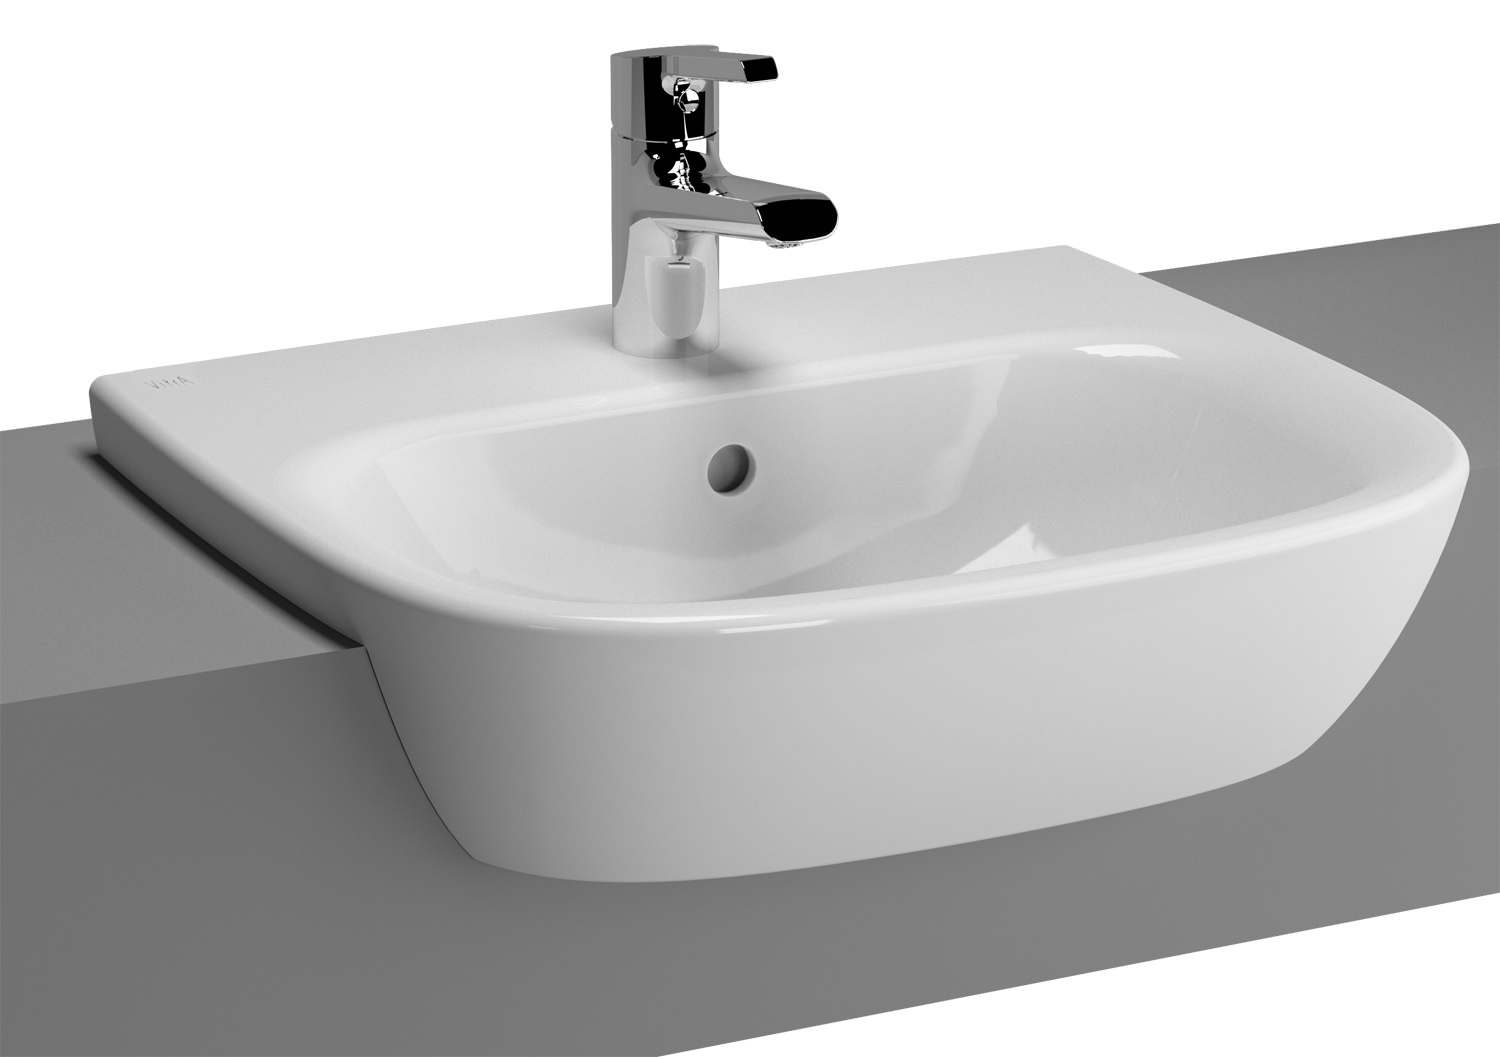 Ultra modern kitchens - Vitra Zentrum 495mm Semi Recessed Basin 5635b003 0001